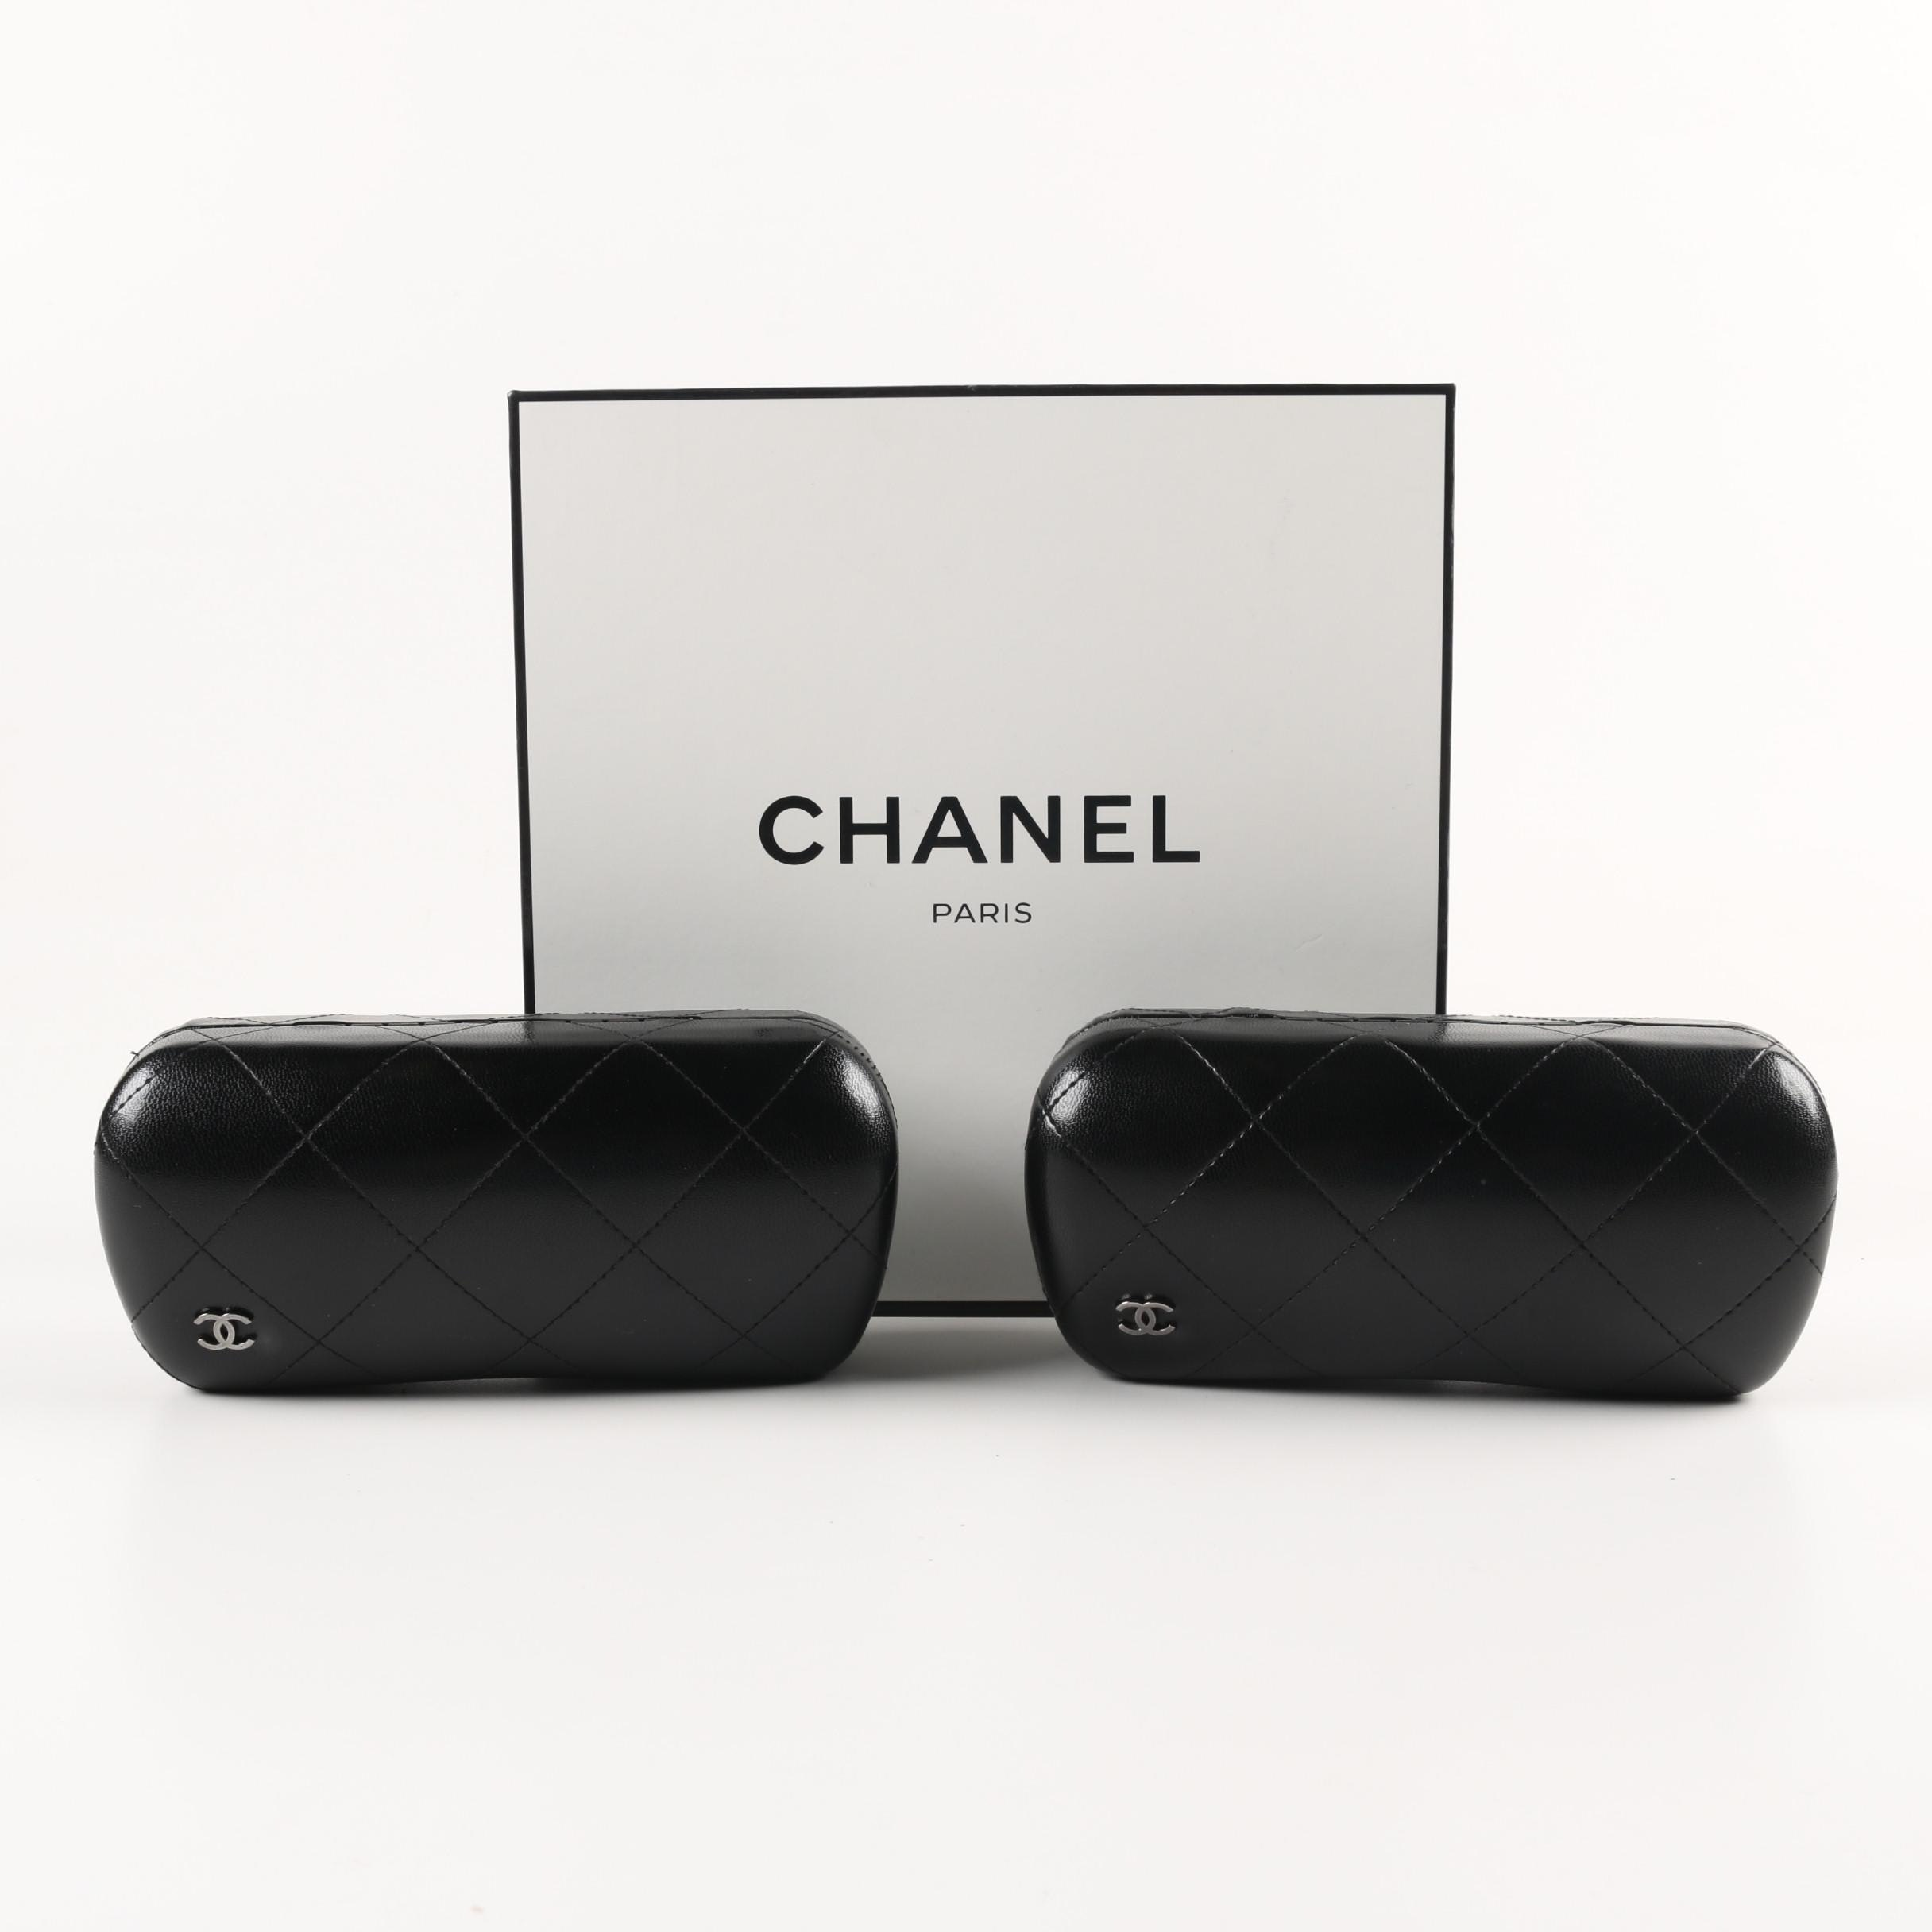 Chanel Sunglass Cases with Boxes